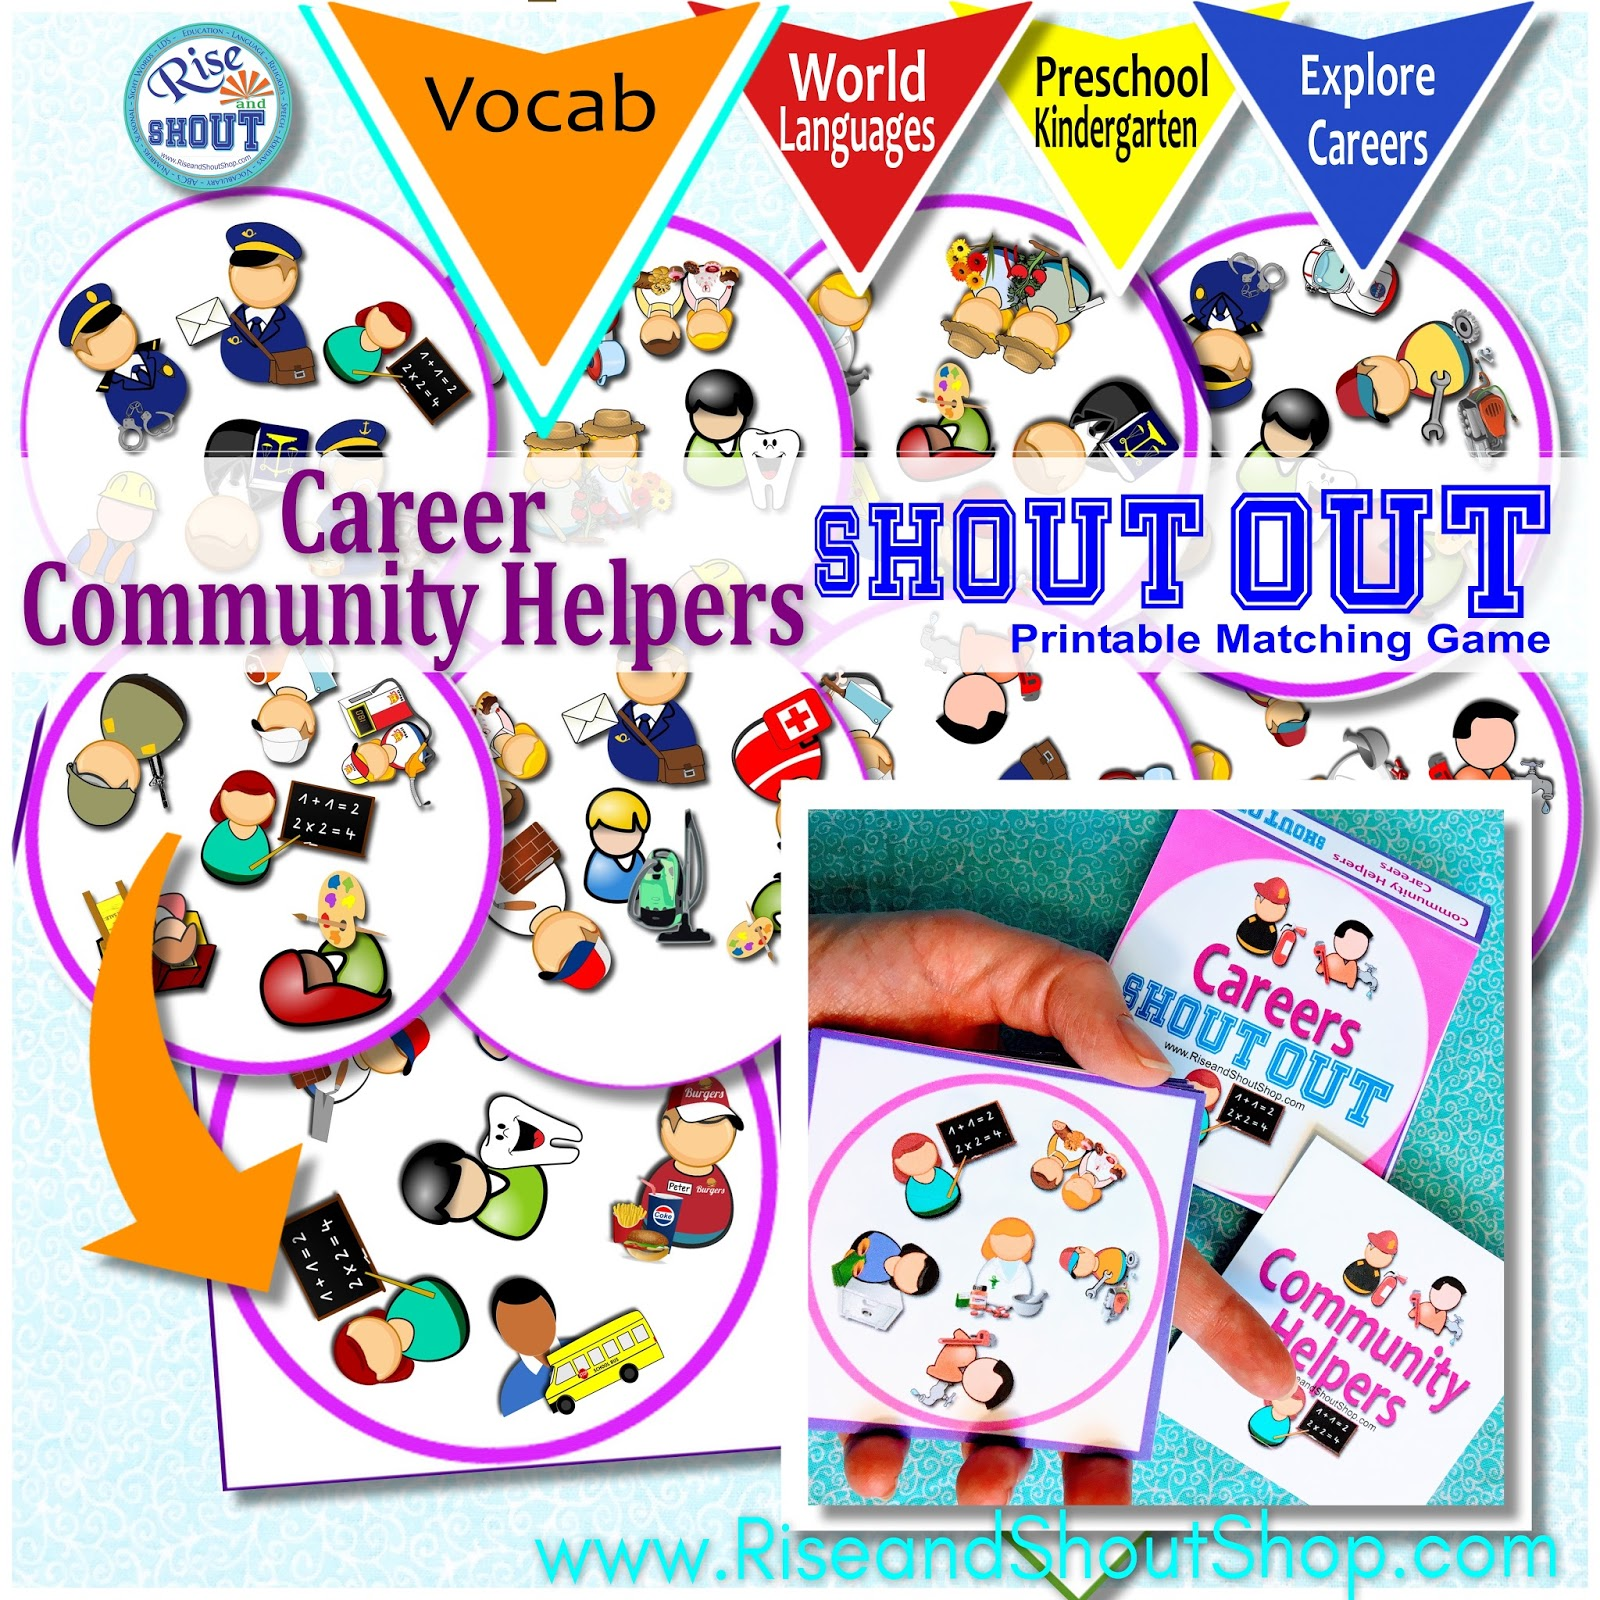 rise and shout careers shout out